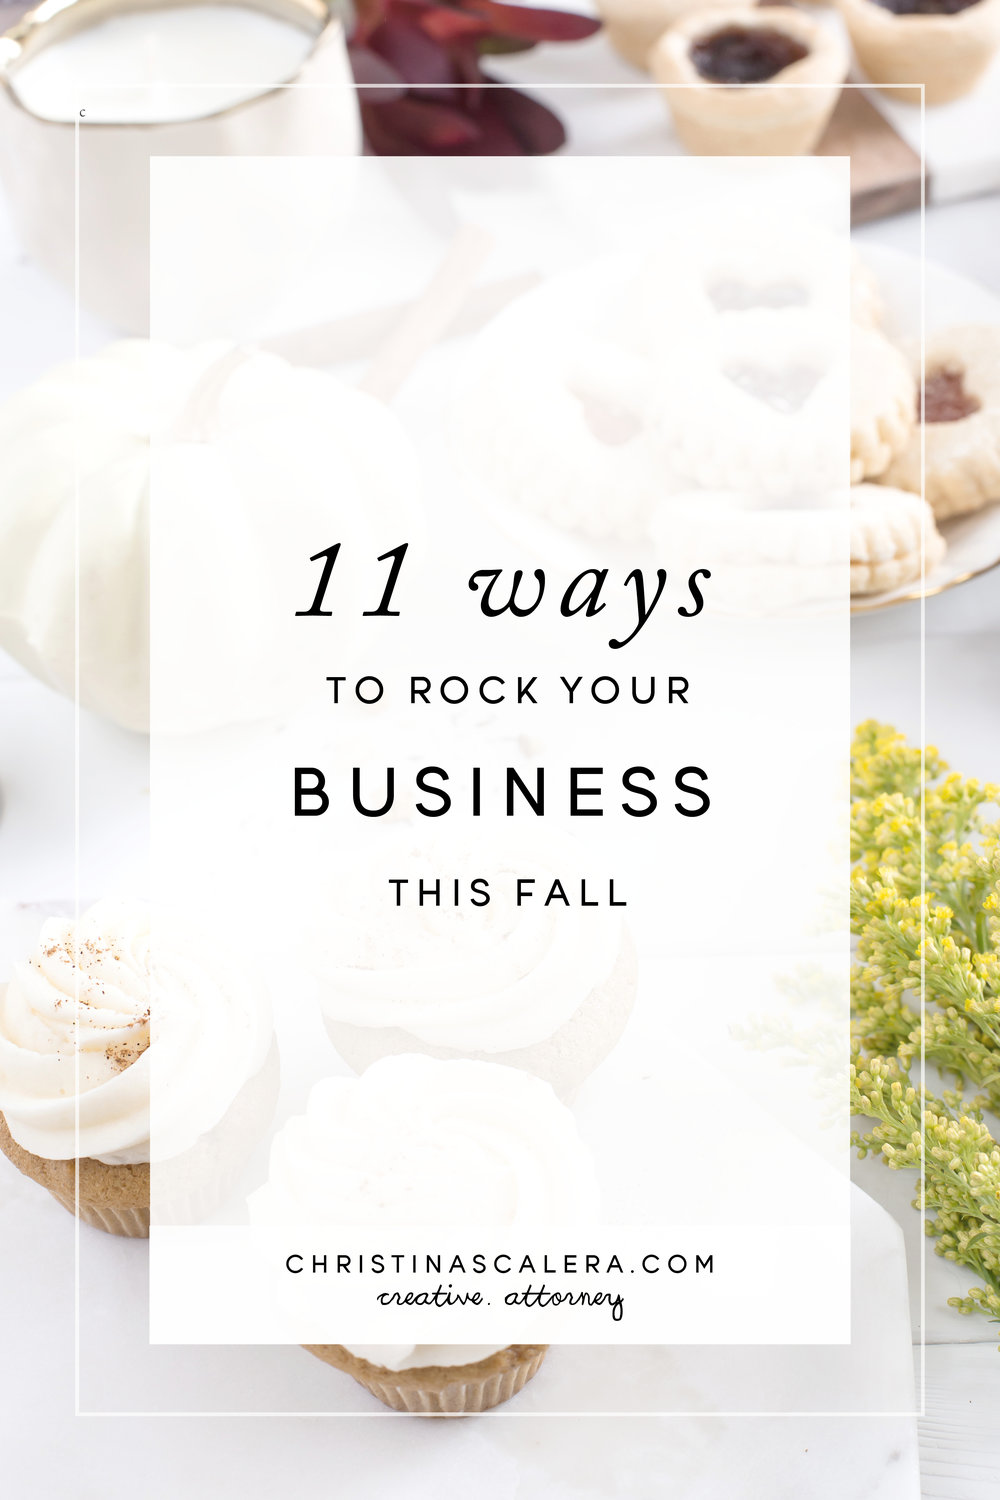 11 Ways to rock your business this fall!